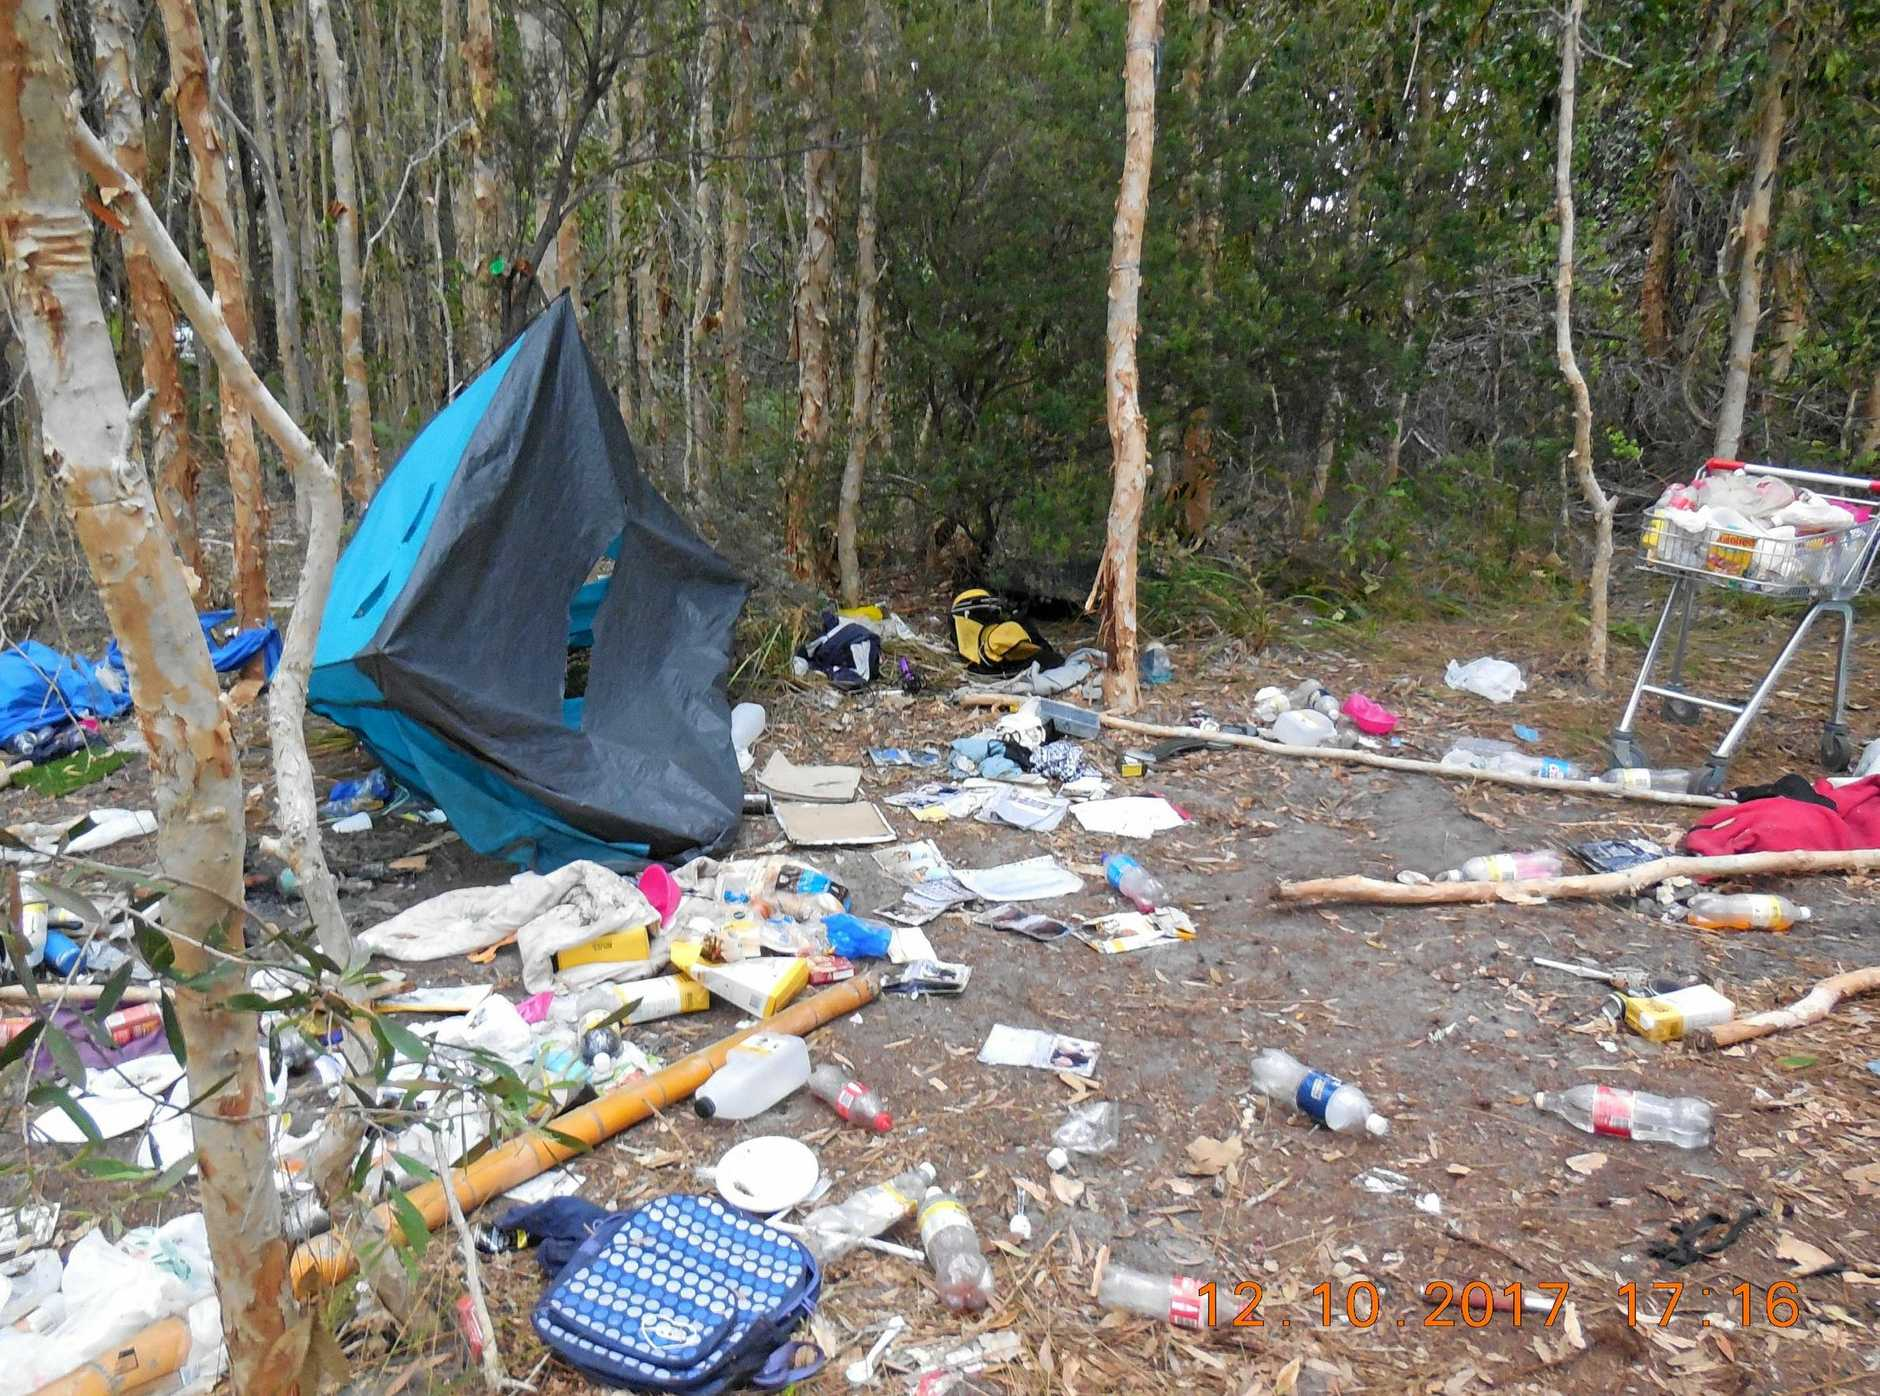 WHAT A WASTE: Tents, food and a shopping trolley were among the litter left scattered around the remains of an illegal camp on the Tin Can Bay foreshore.